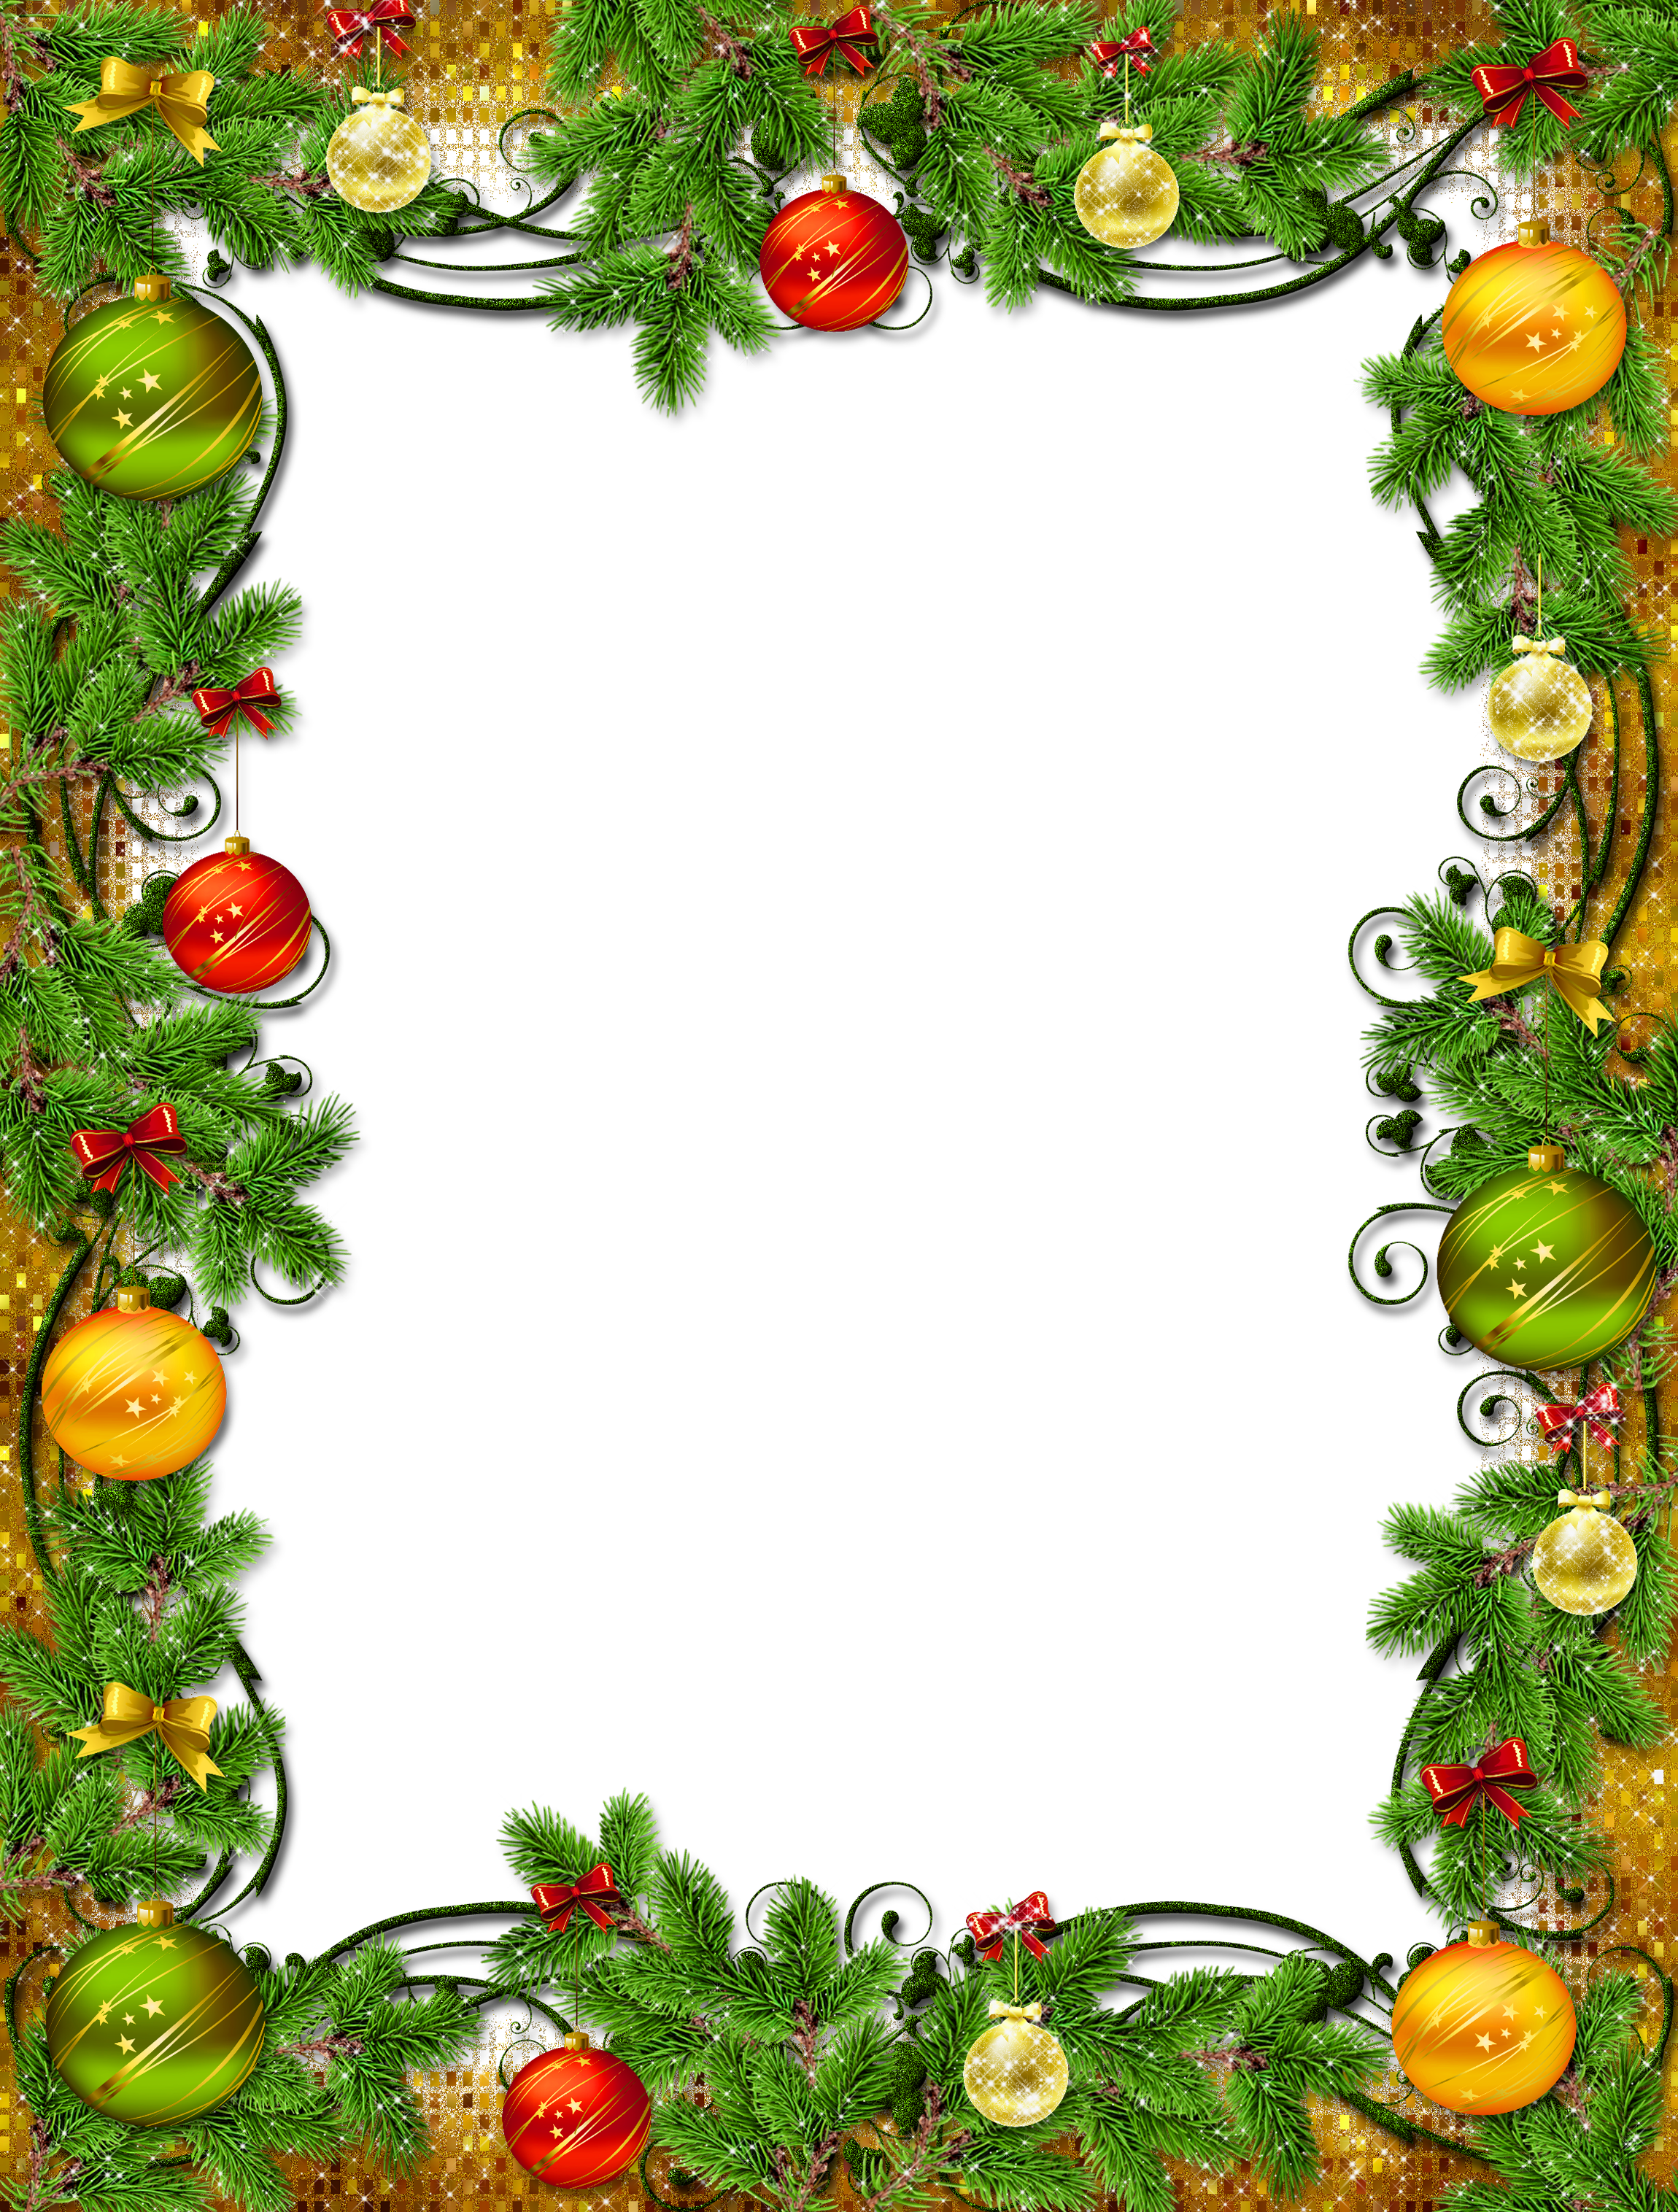 Frame clipart holiday Christmas Frame Gallery Tags: High